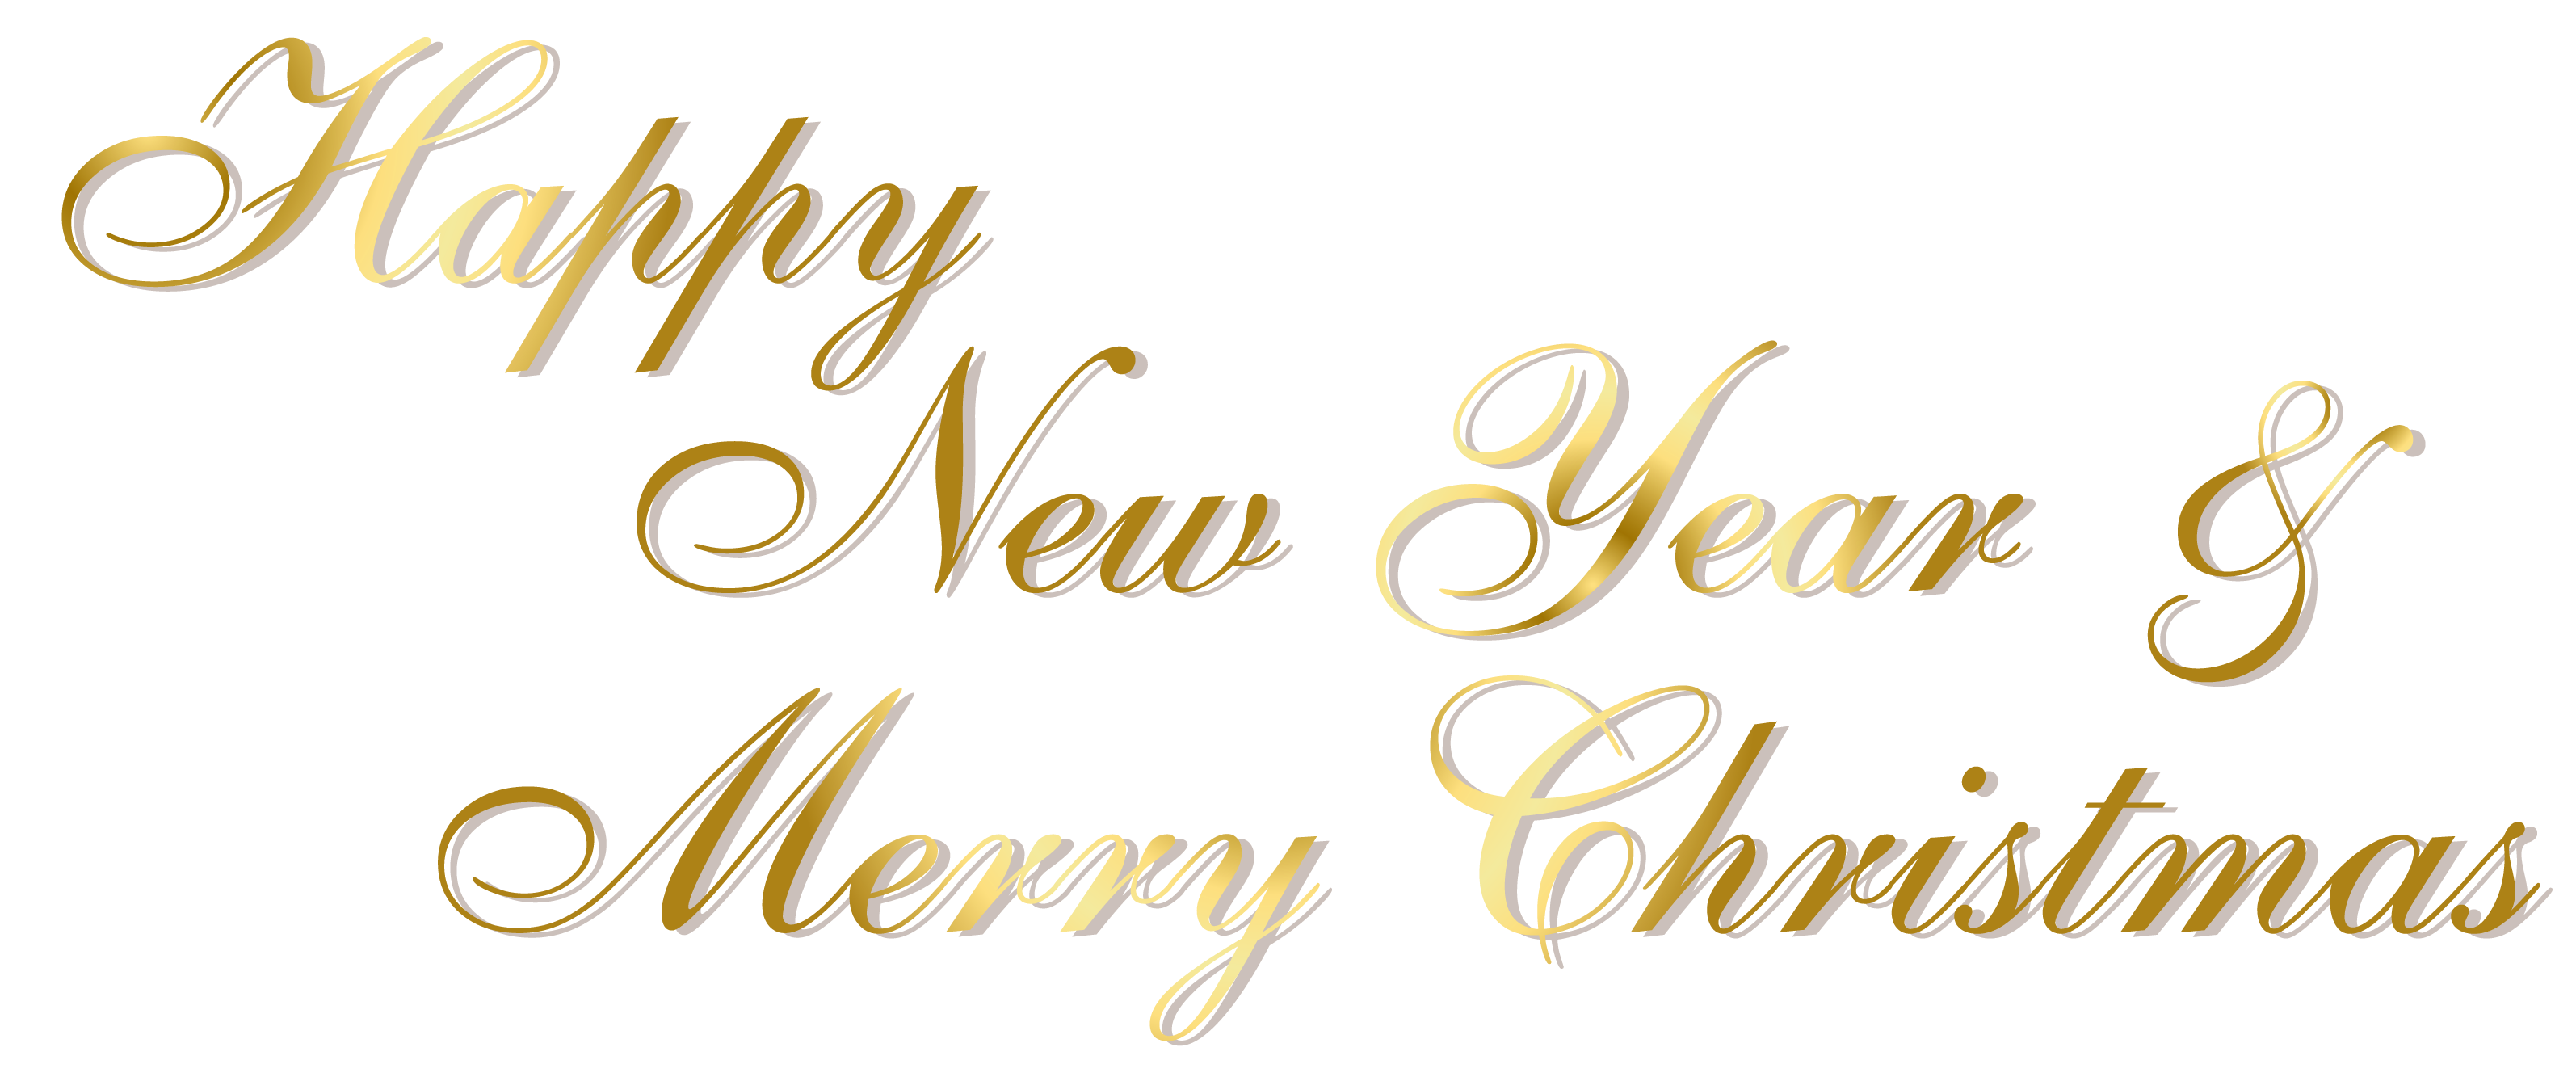 Merry christmas and happy new year png. Gold text gallery view